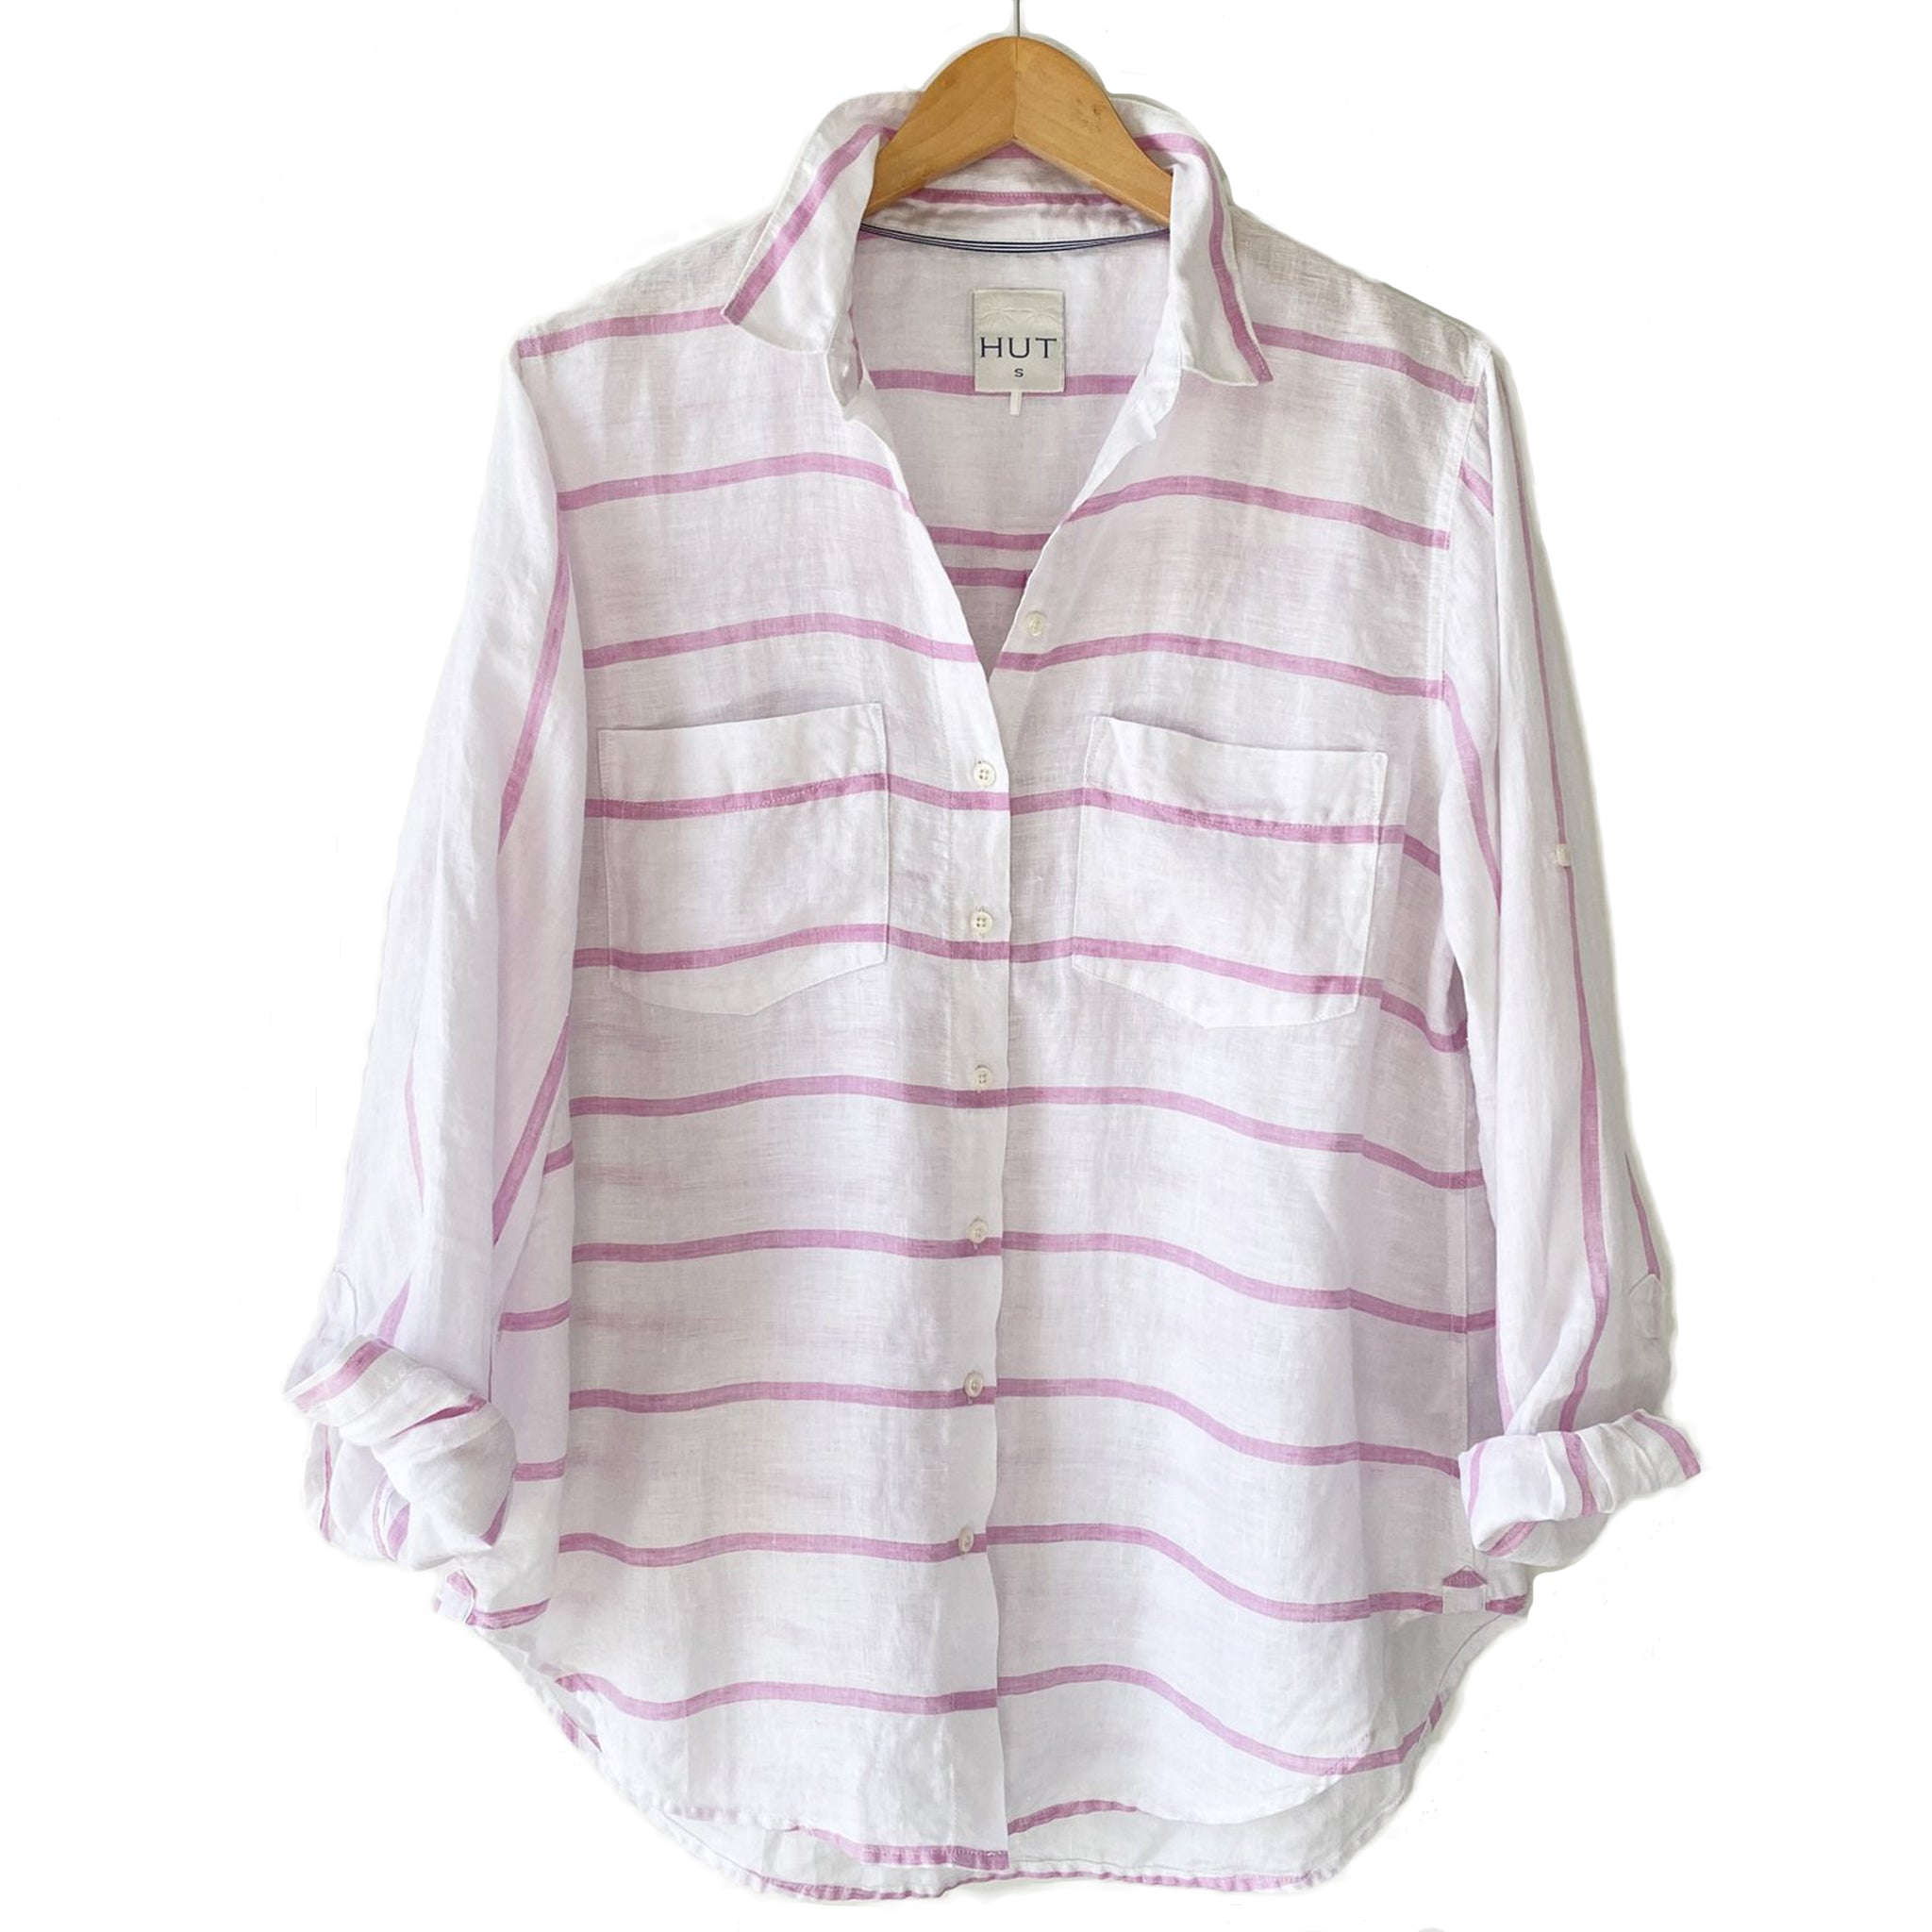 The Boyfriend Linen Shirt in Musk Pink Chambray Horizontal Stripe